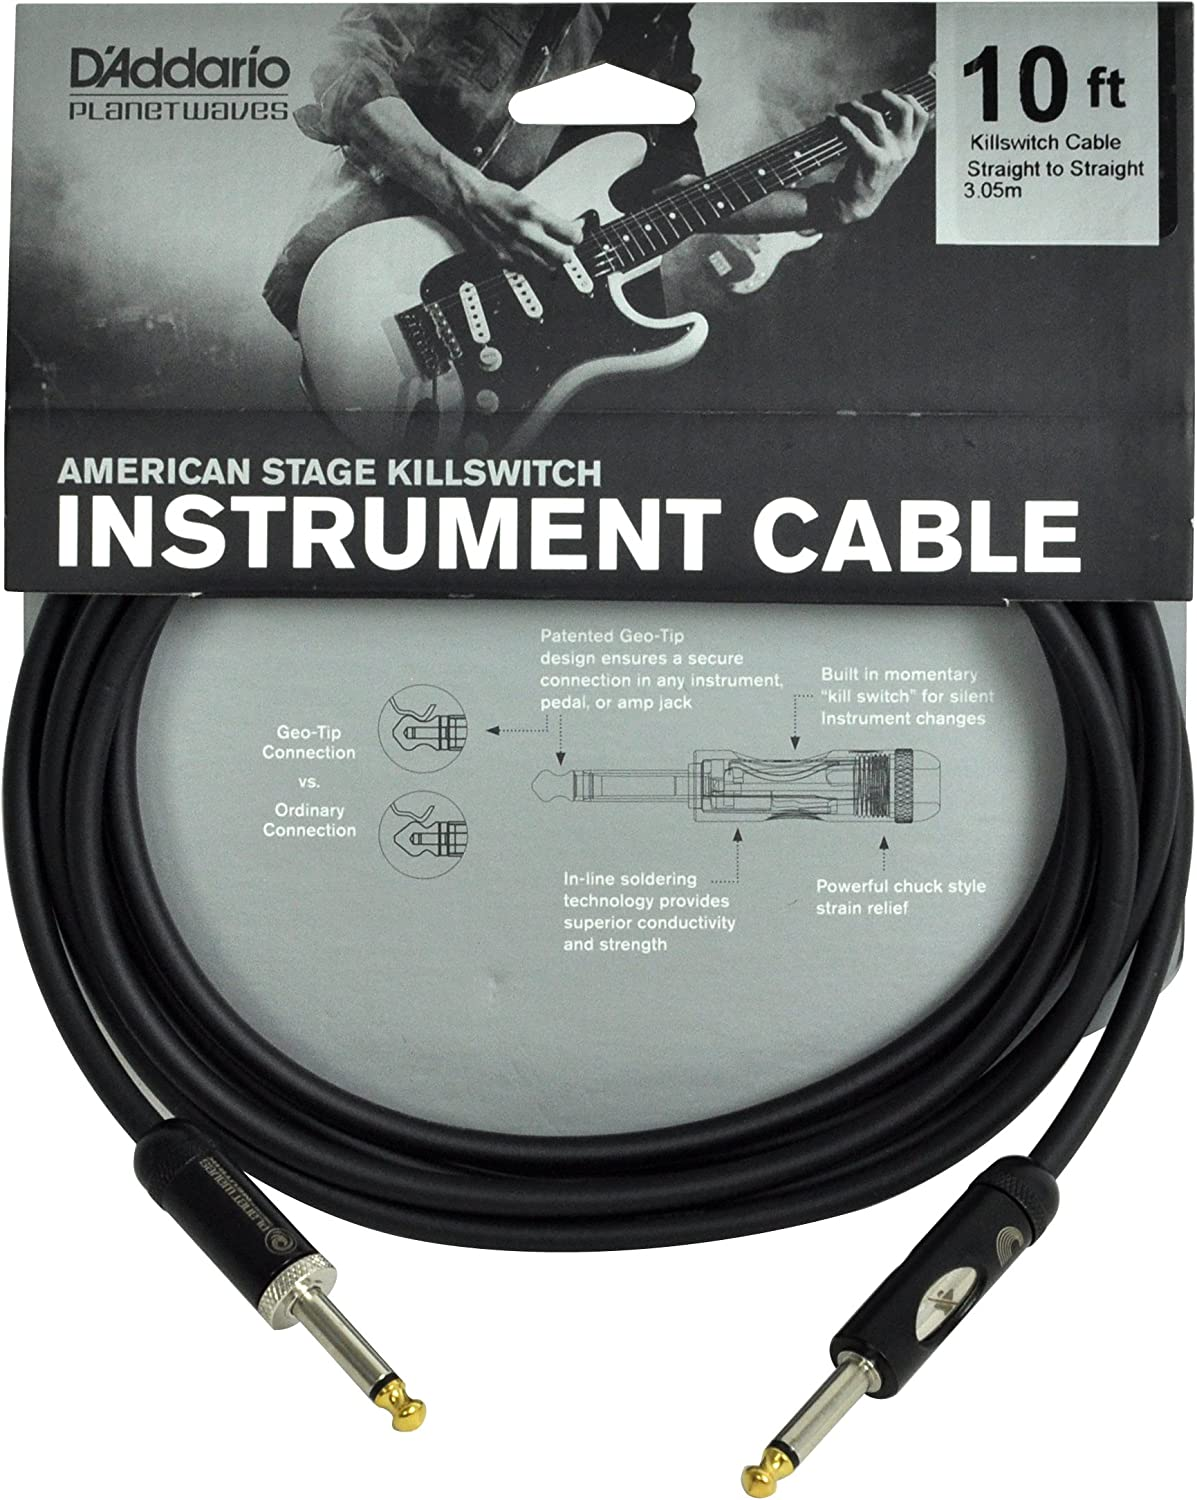 D'Addario Special Max 67% OFF price for a limited time Kill Switch Instrument 10 Cable feet